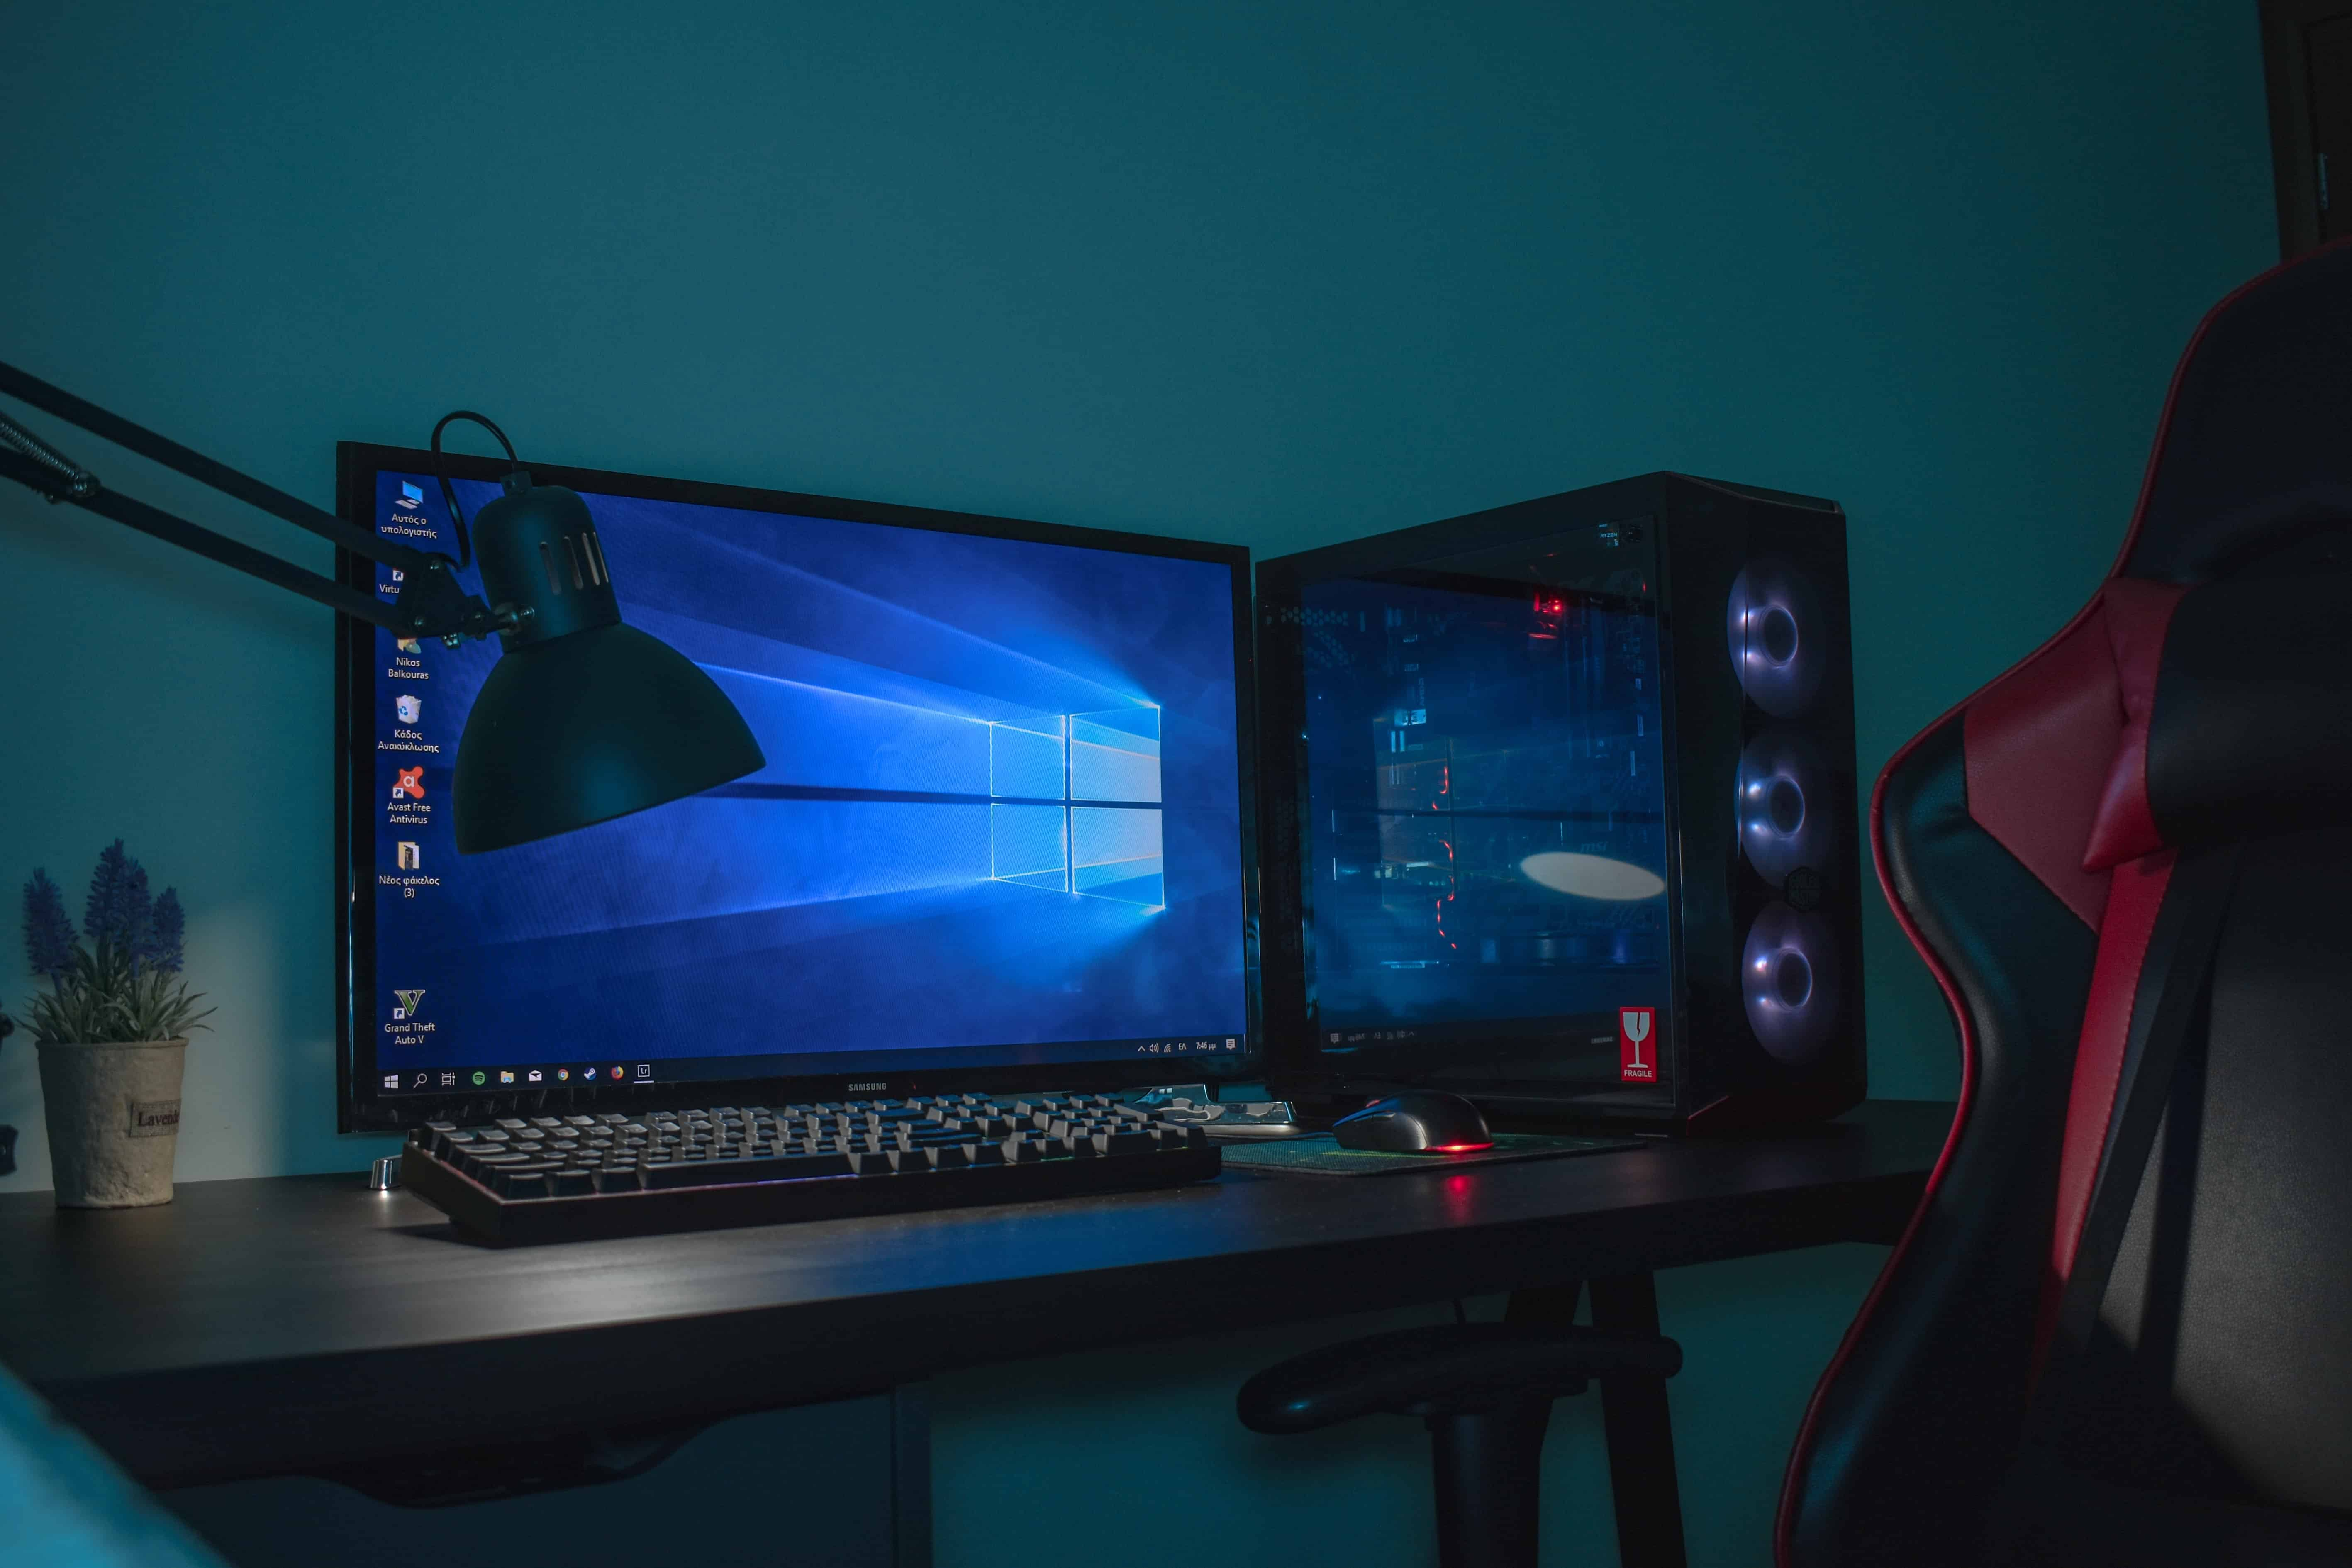 Should You Buy or Build a Gaming PC? - 1